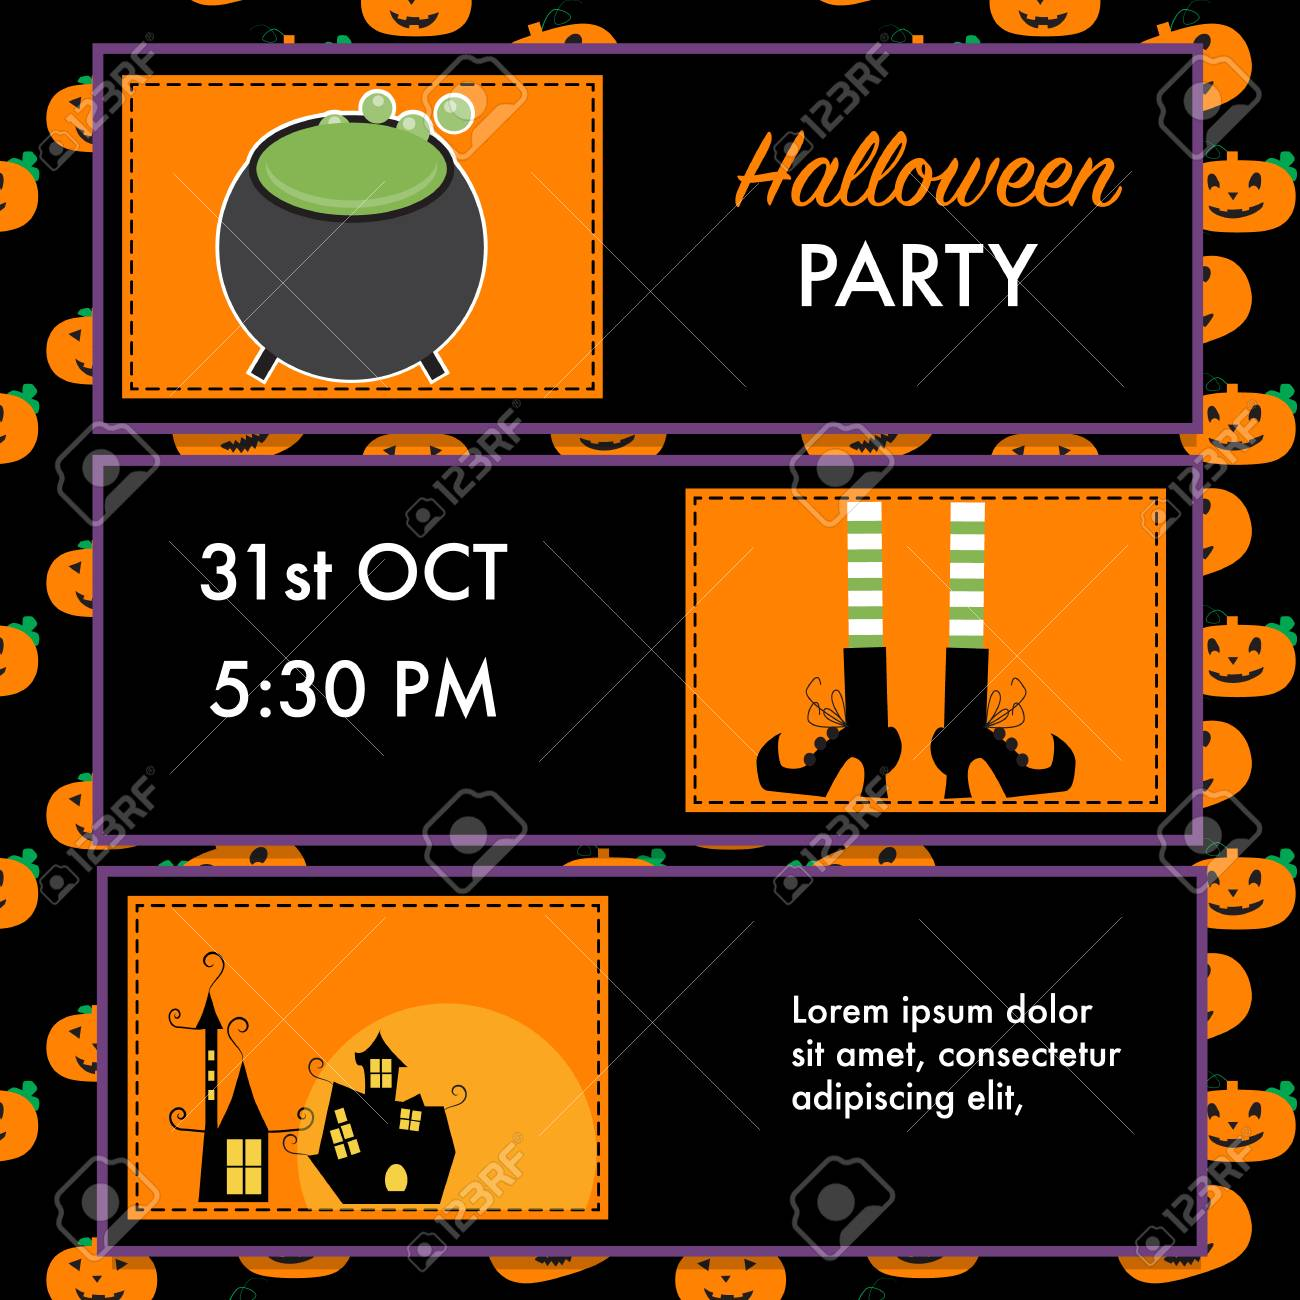 Halloween Party Invitation Cards Witch Character